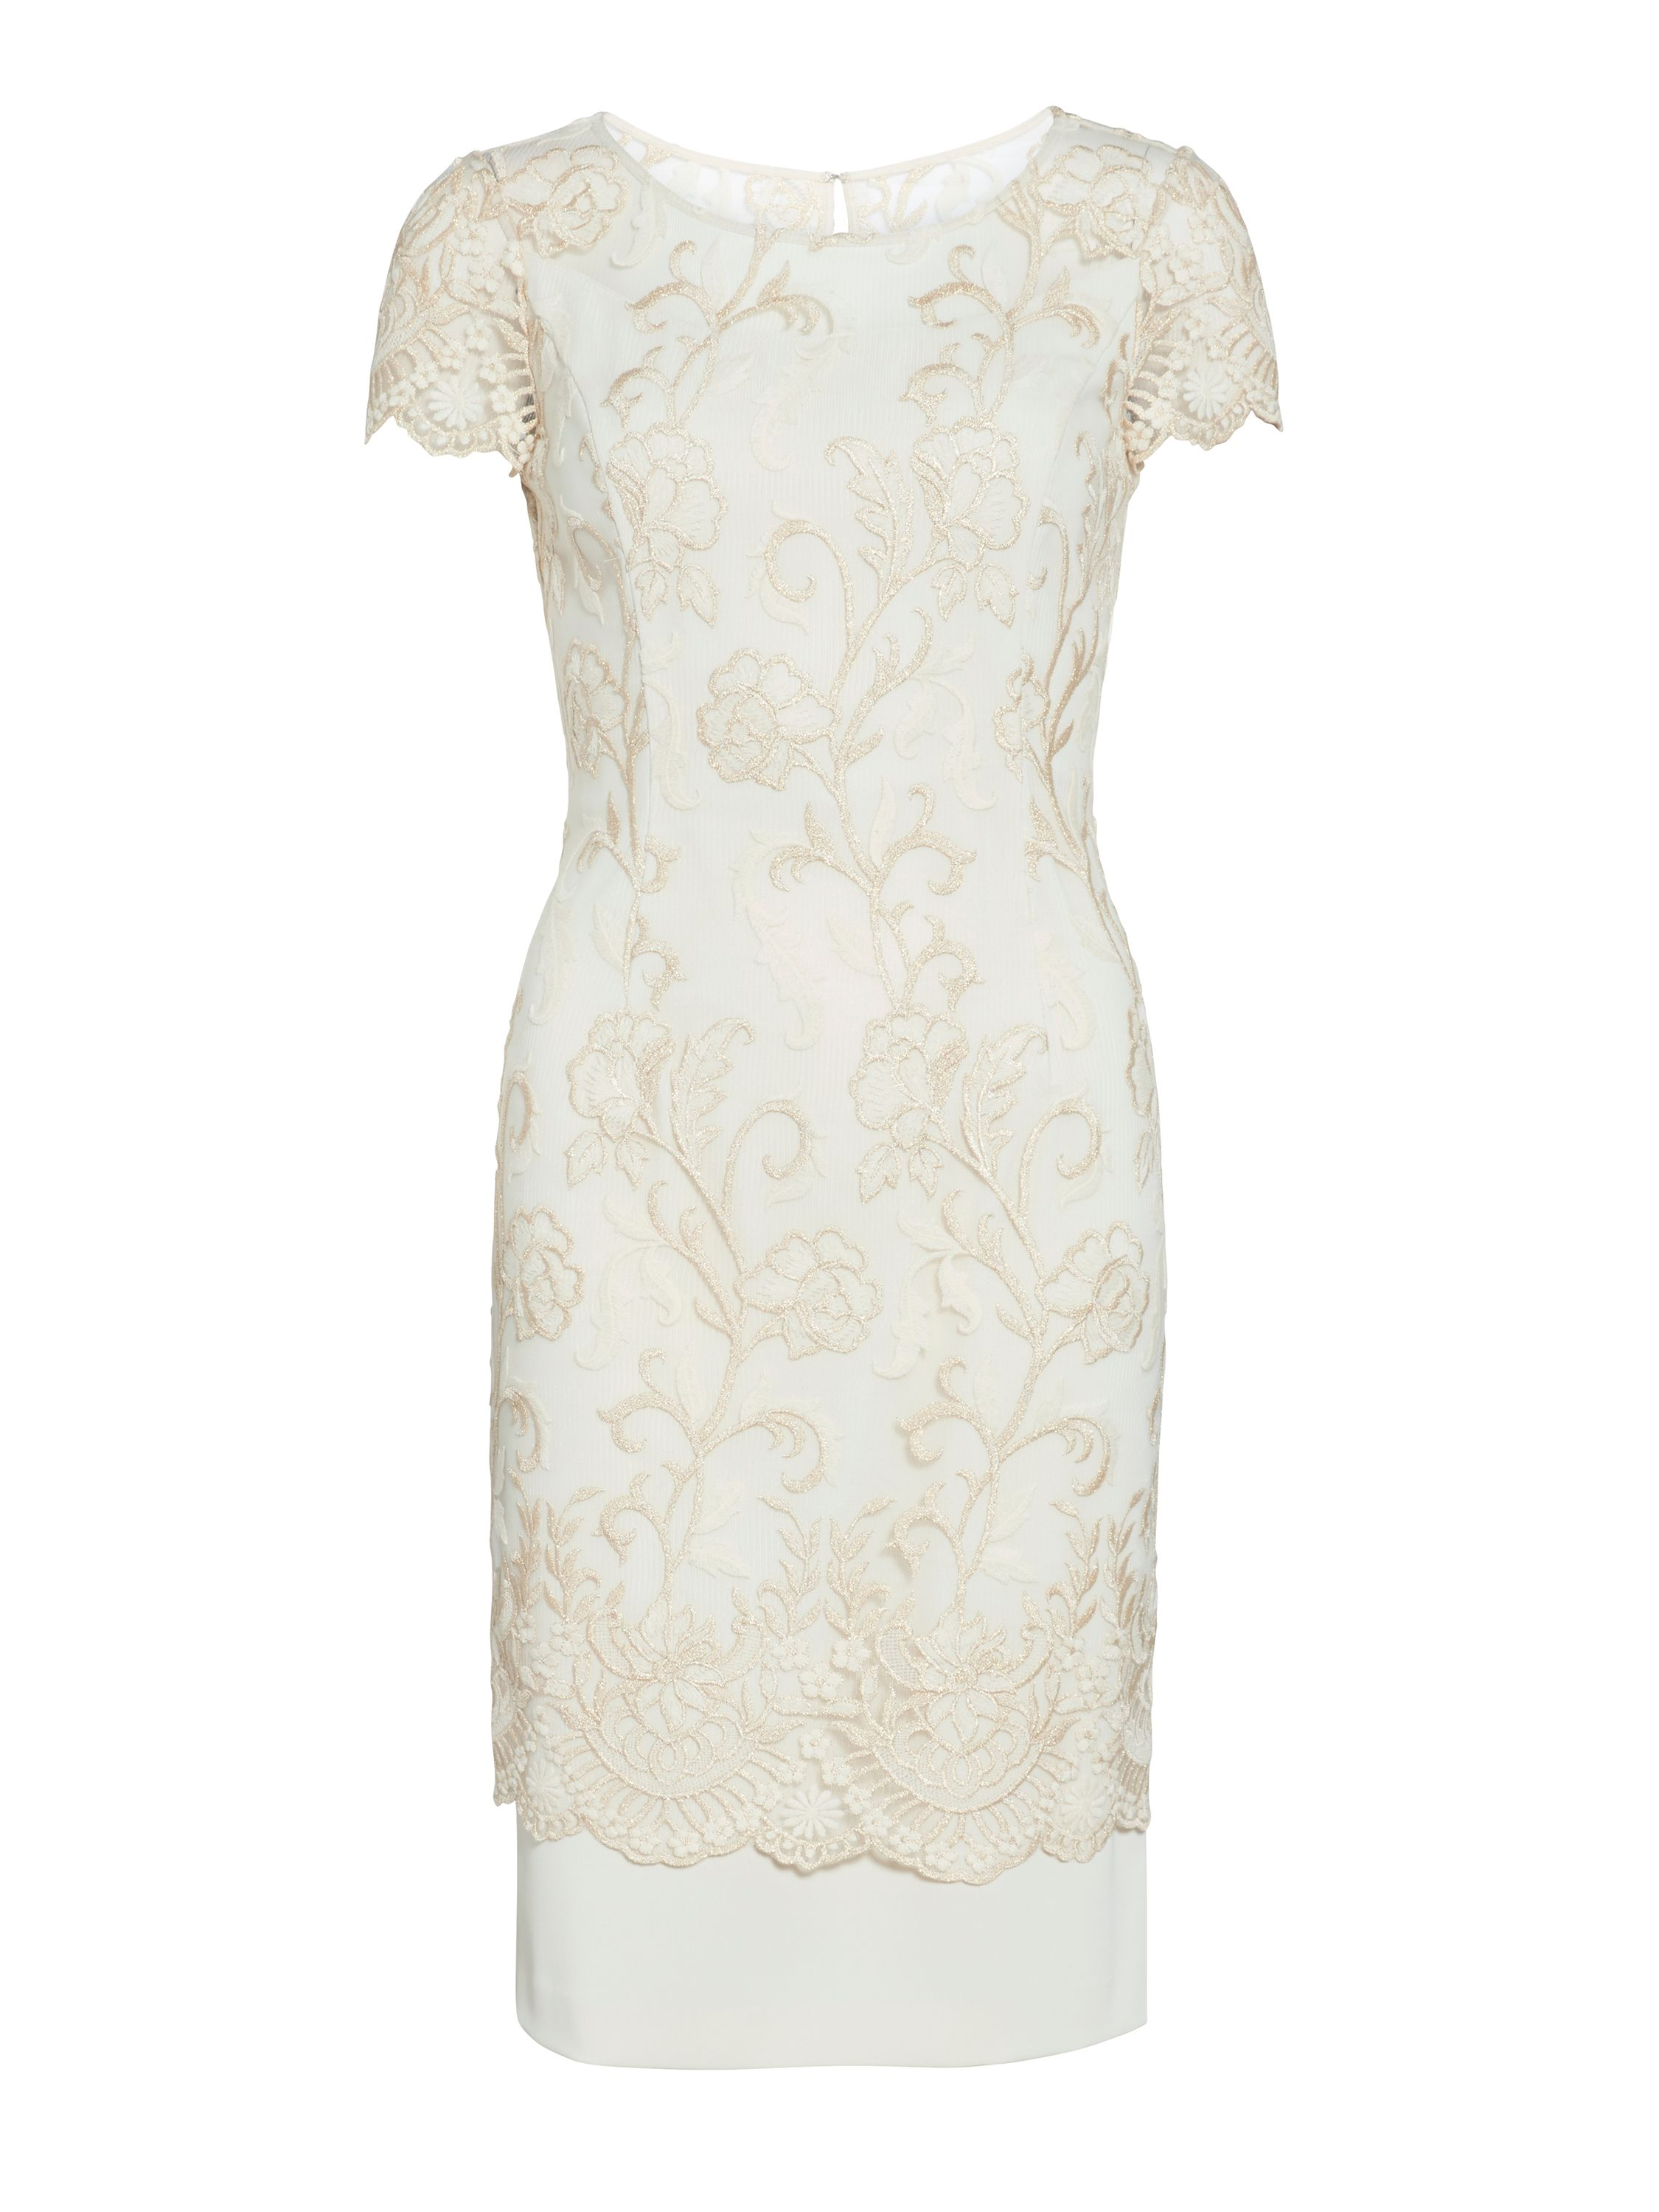 Gina Bacconi Metallic embroidered border dress, Cream